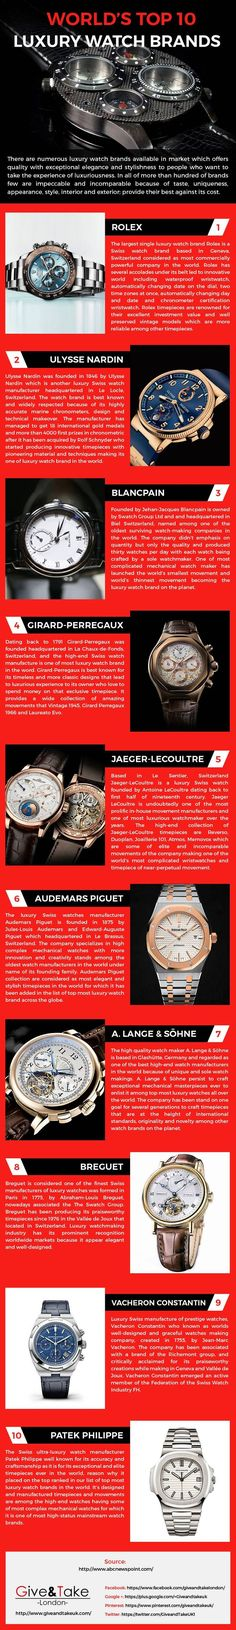 World's Top 10 Luxury Watch Brands #Infographic #Watches